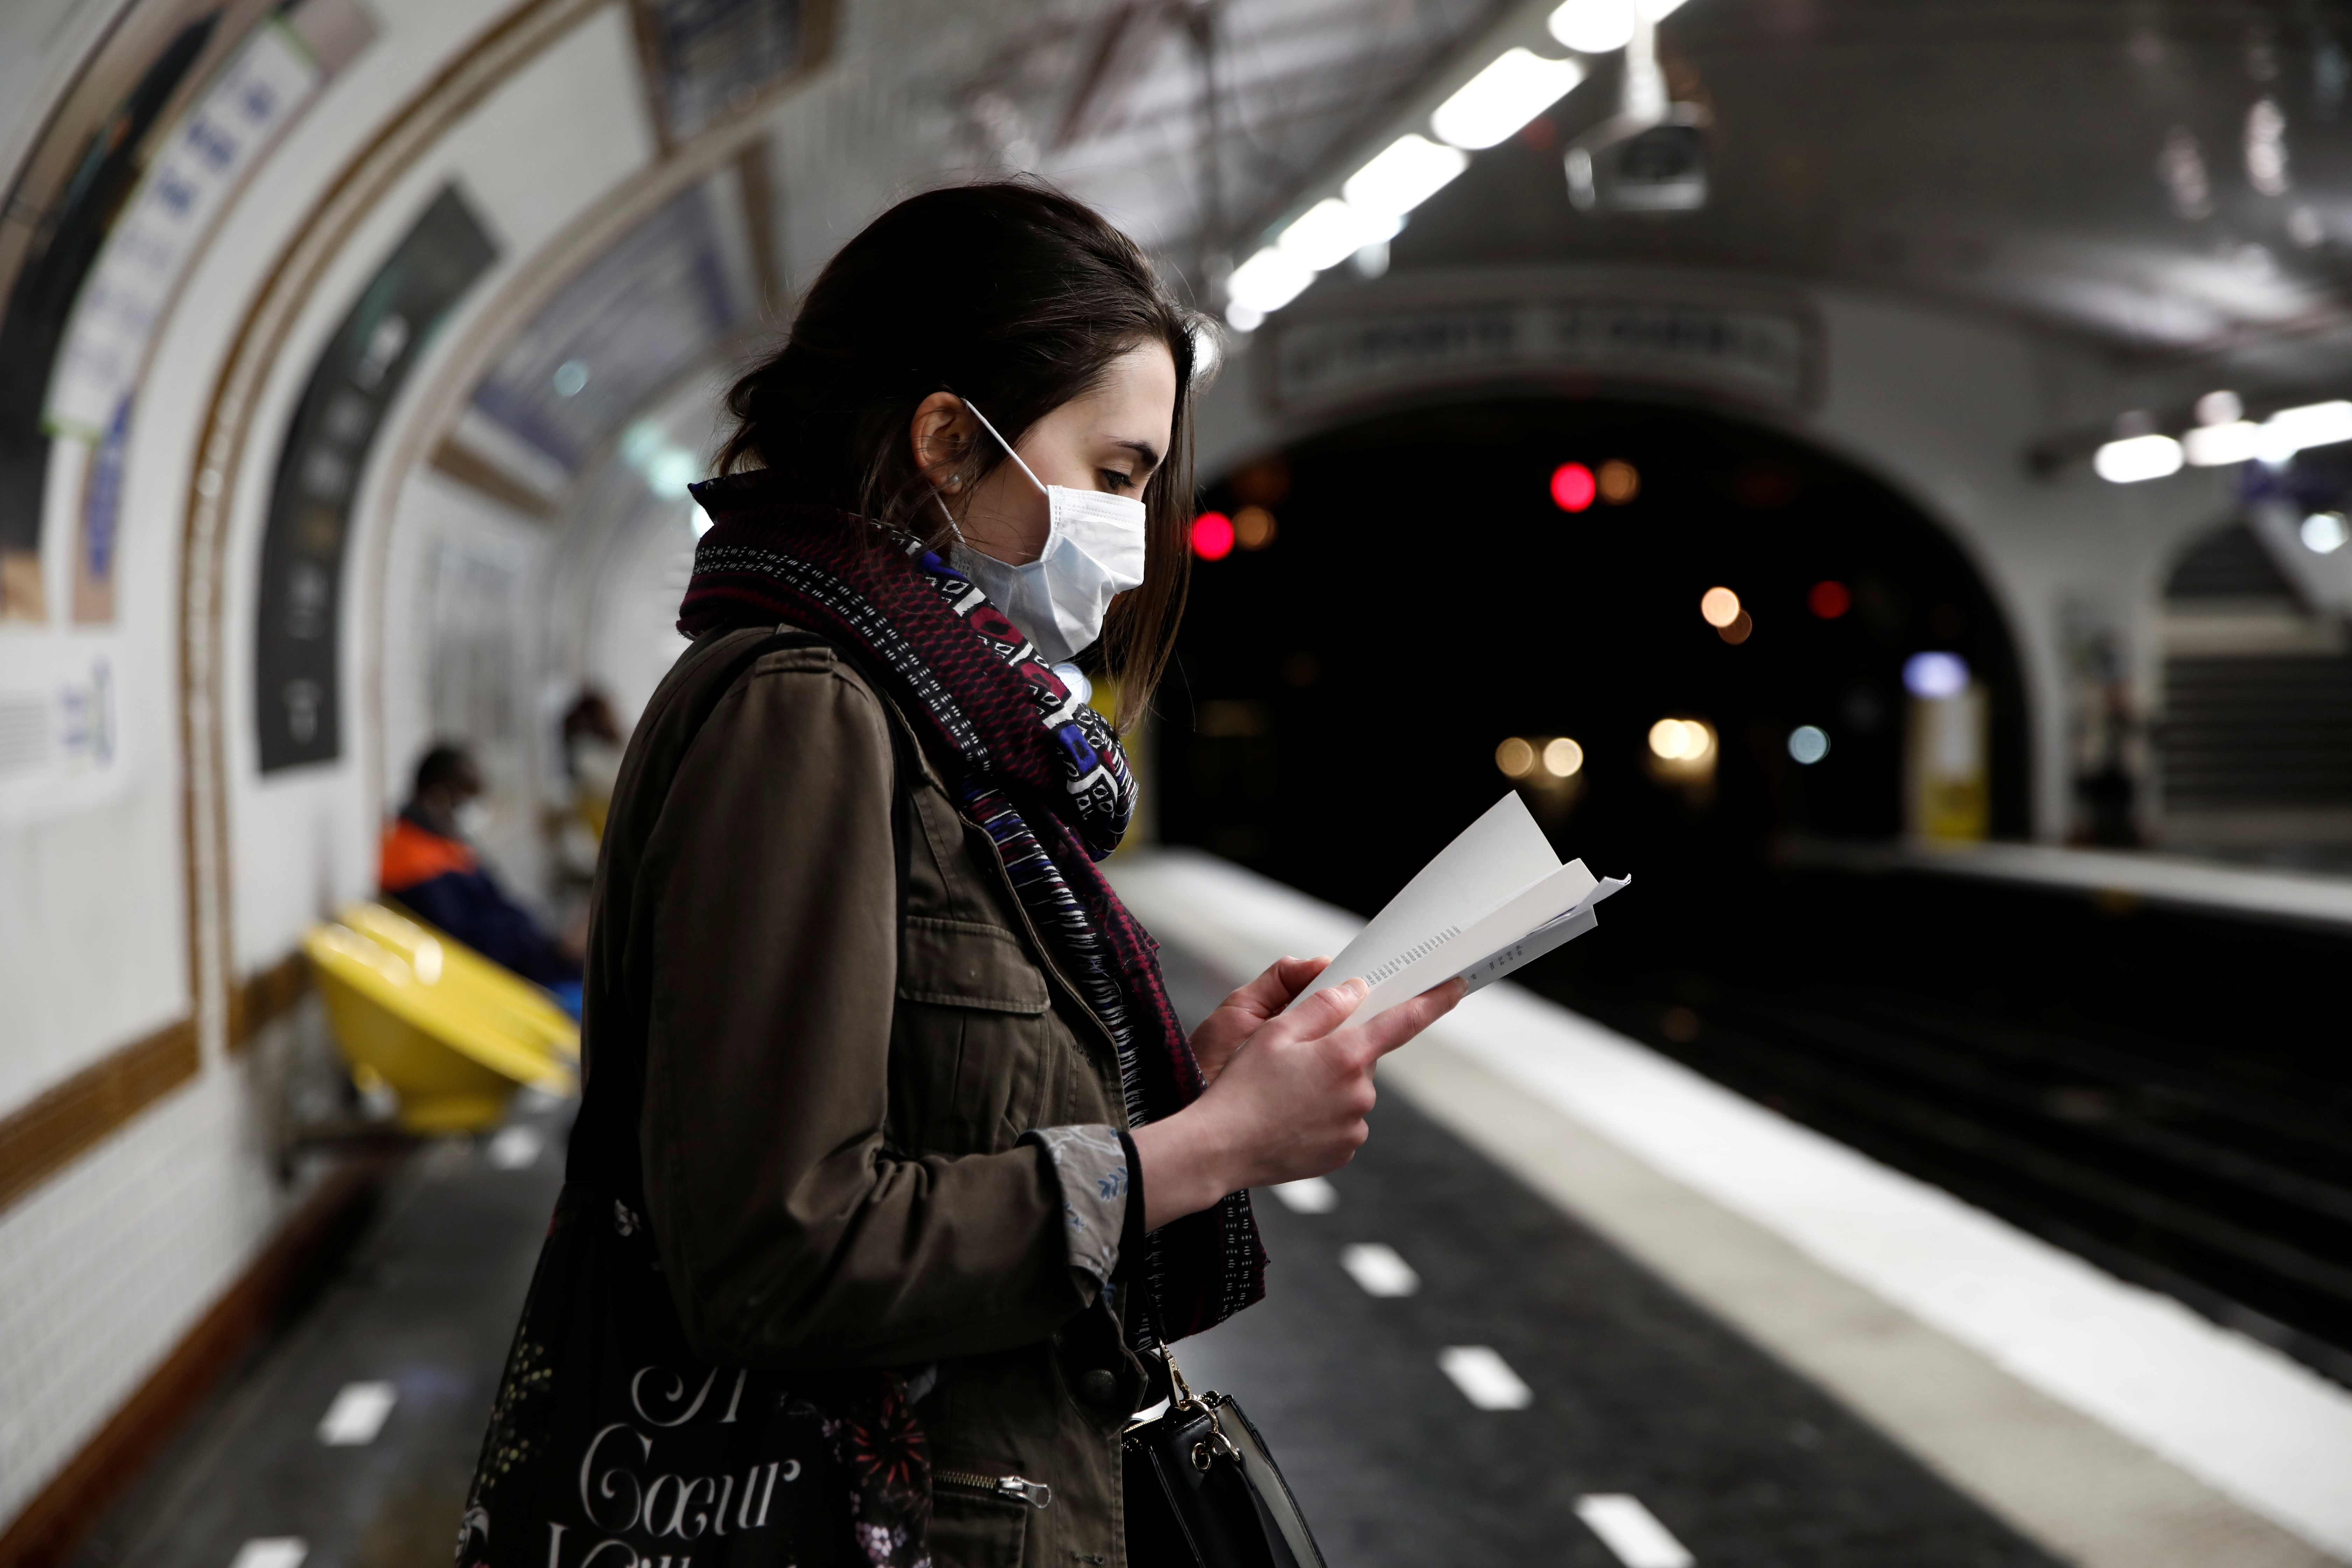 A woman wearing a protective face mask reads a book on a platform at a metro station of Paris transport network (RATP) during the outbreak of the coronavirus disease (COVID-19) in Paris, France, May 5, 2020. REUTERS/Benoit Tessier - RC2EIG9NNACY